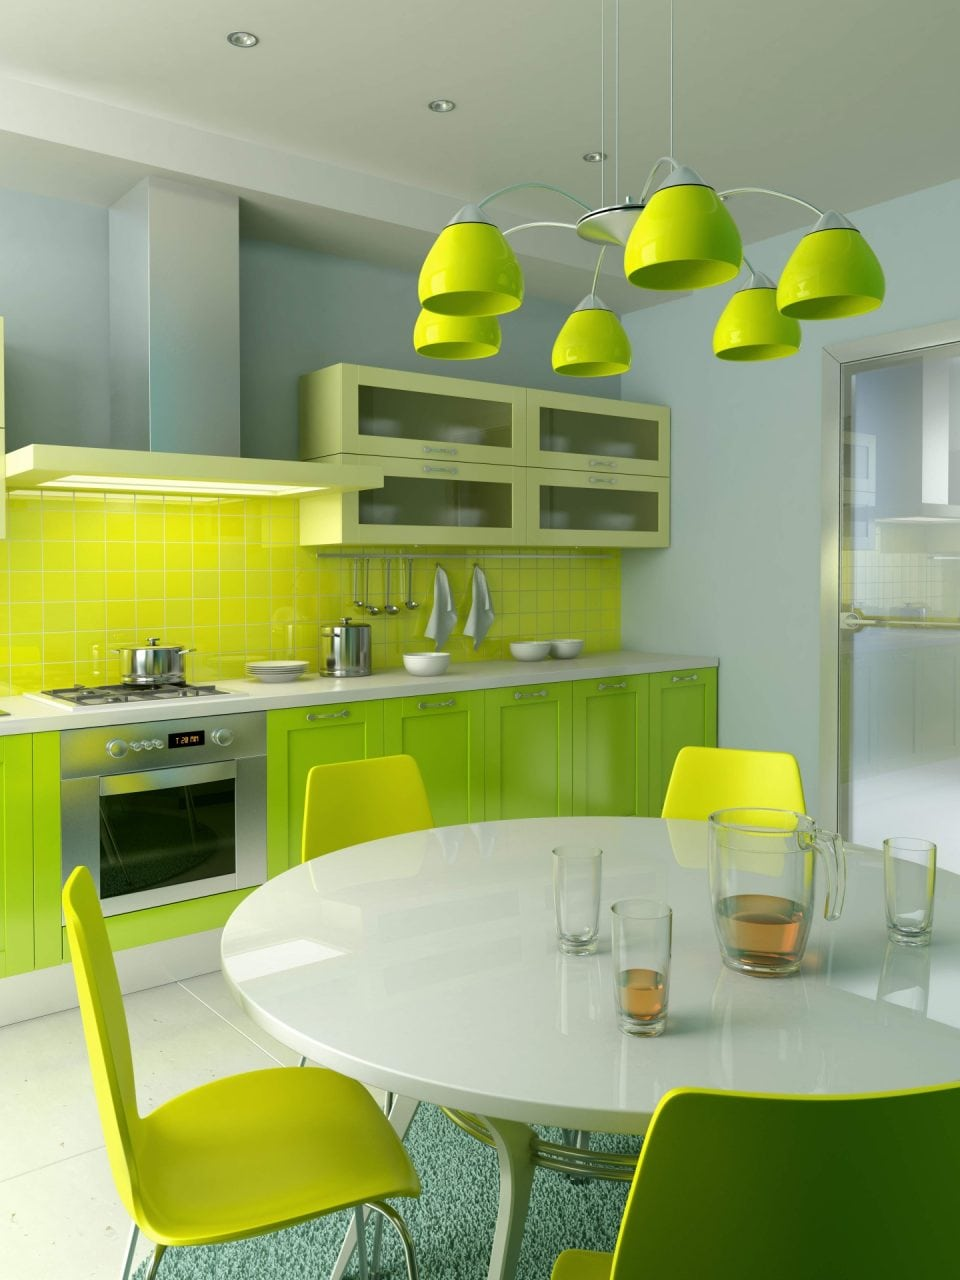 spectacular colorful apartment decoration kitchen furnishing ideas with gloss acrylic green kitchen cabinets and rounded white acrylic breakfast table sets spectacular - Imobiliare.ro: Interesul pentru apartamente noi s-a triplat in patru ani